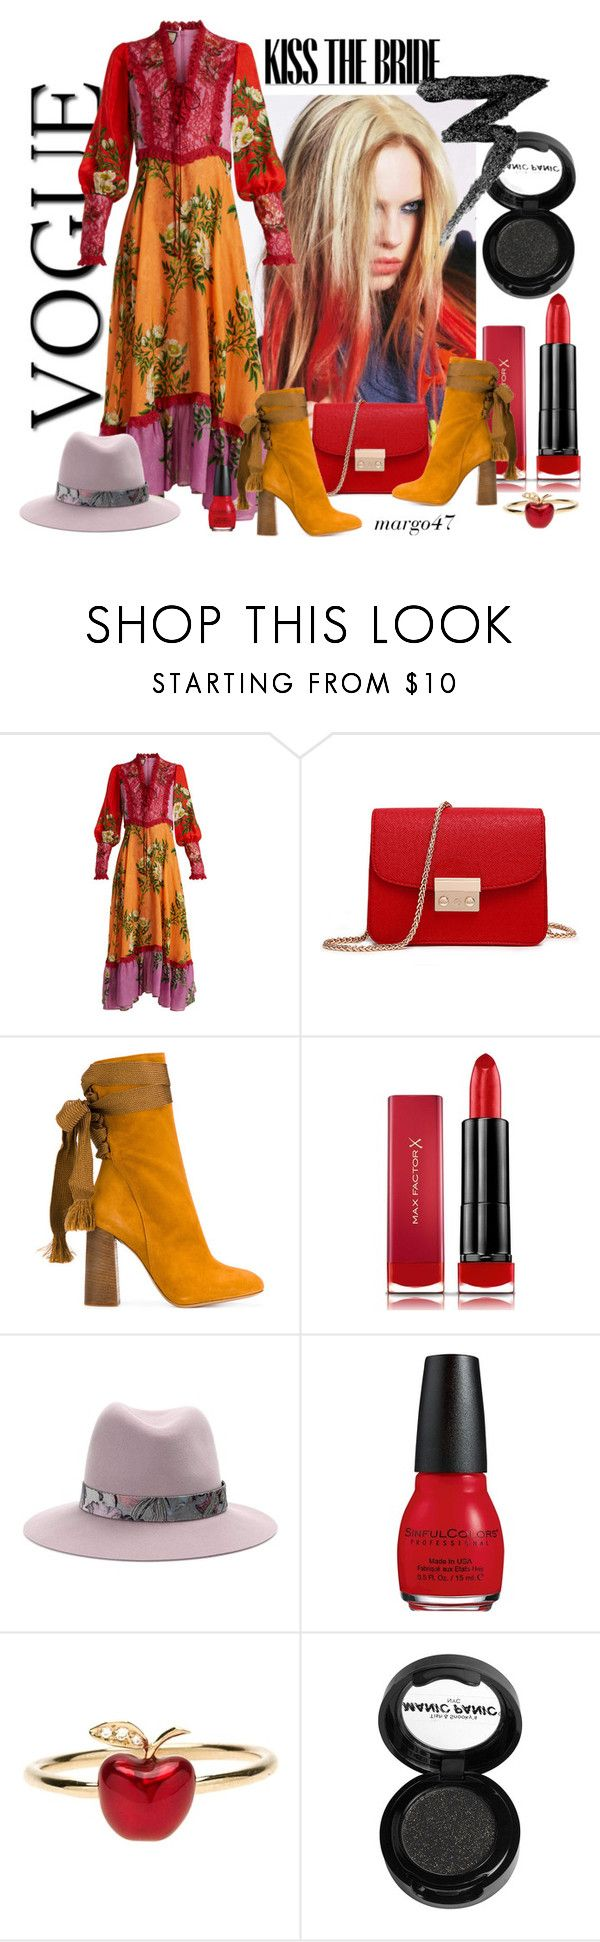 """kwiatowy look"" by margo47 ❤ liked on Polyvore featuring Libertine, Gucci, Chloé, Max Factor, rag & bone, Alix, Alison Lou and Manic Panic NYC"